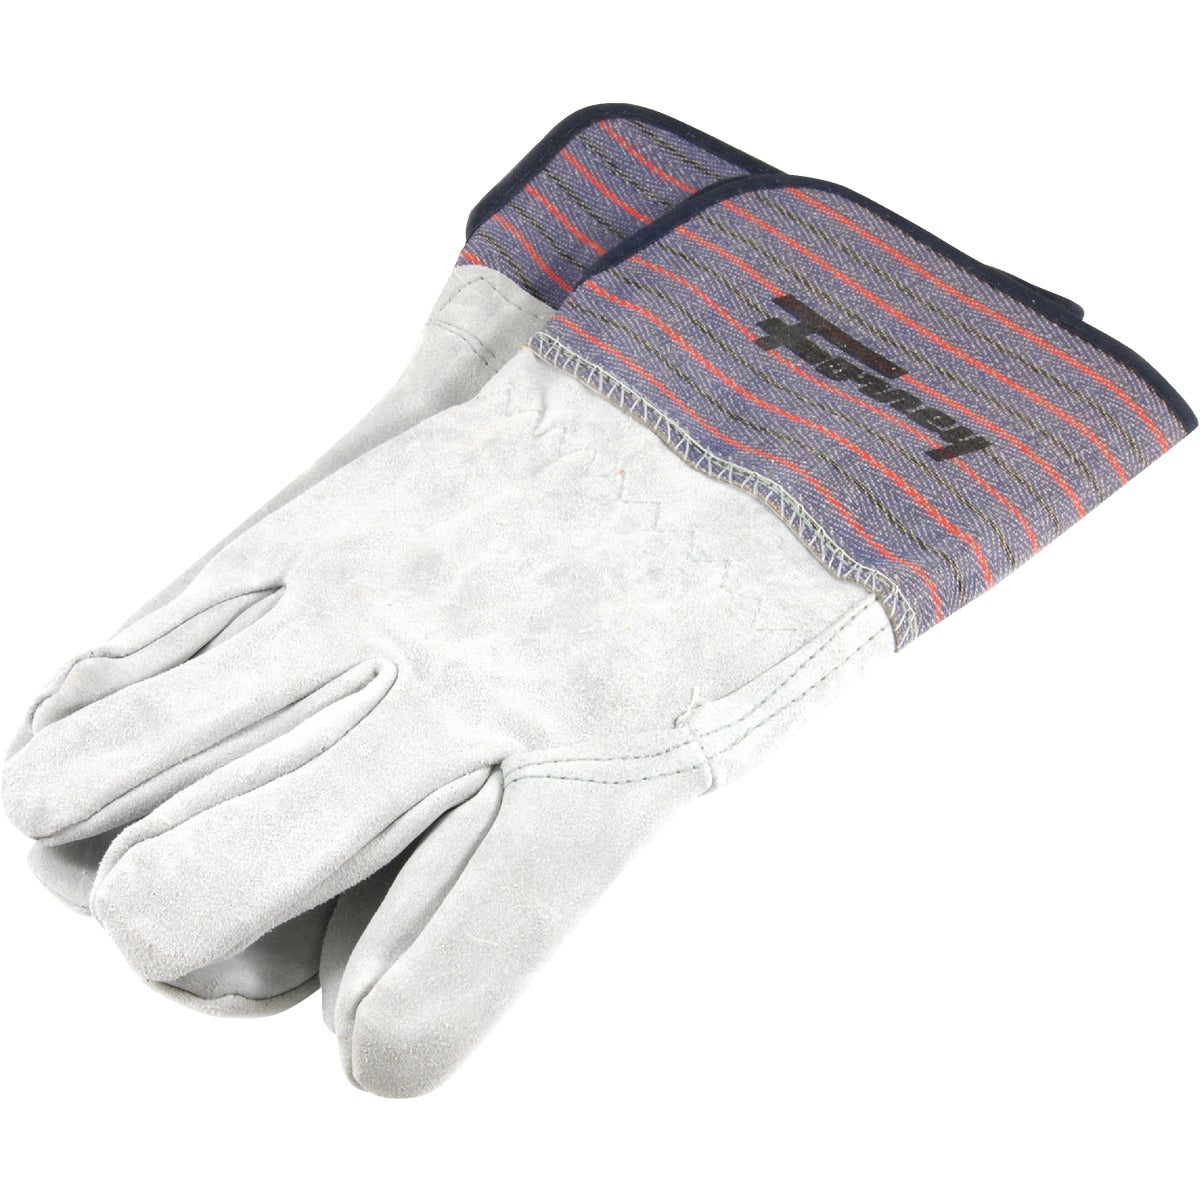 LRG WELDING GLOVES